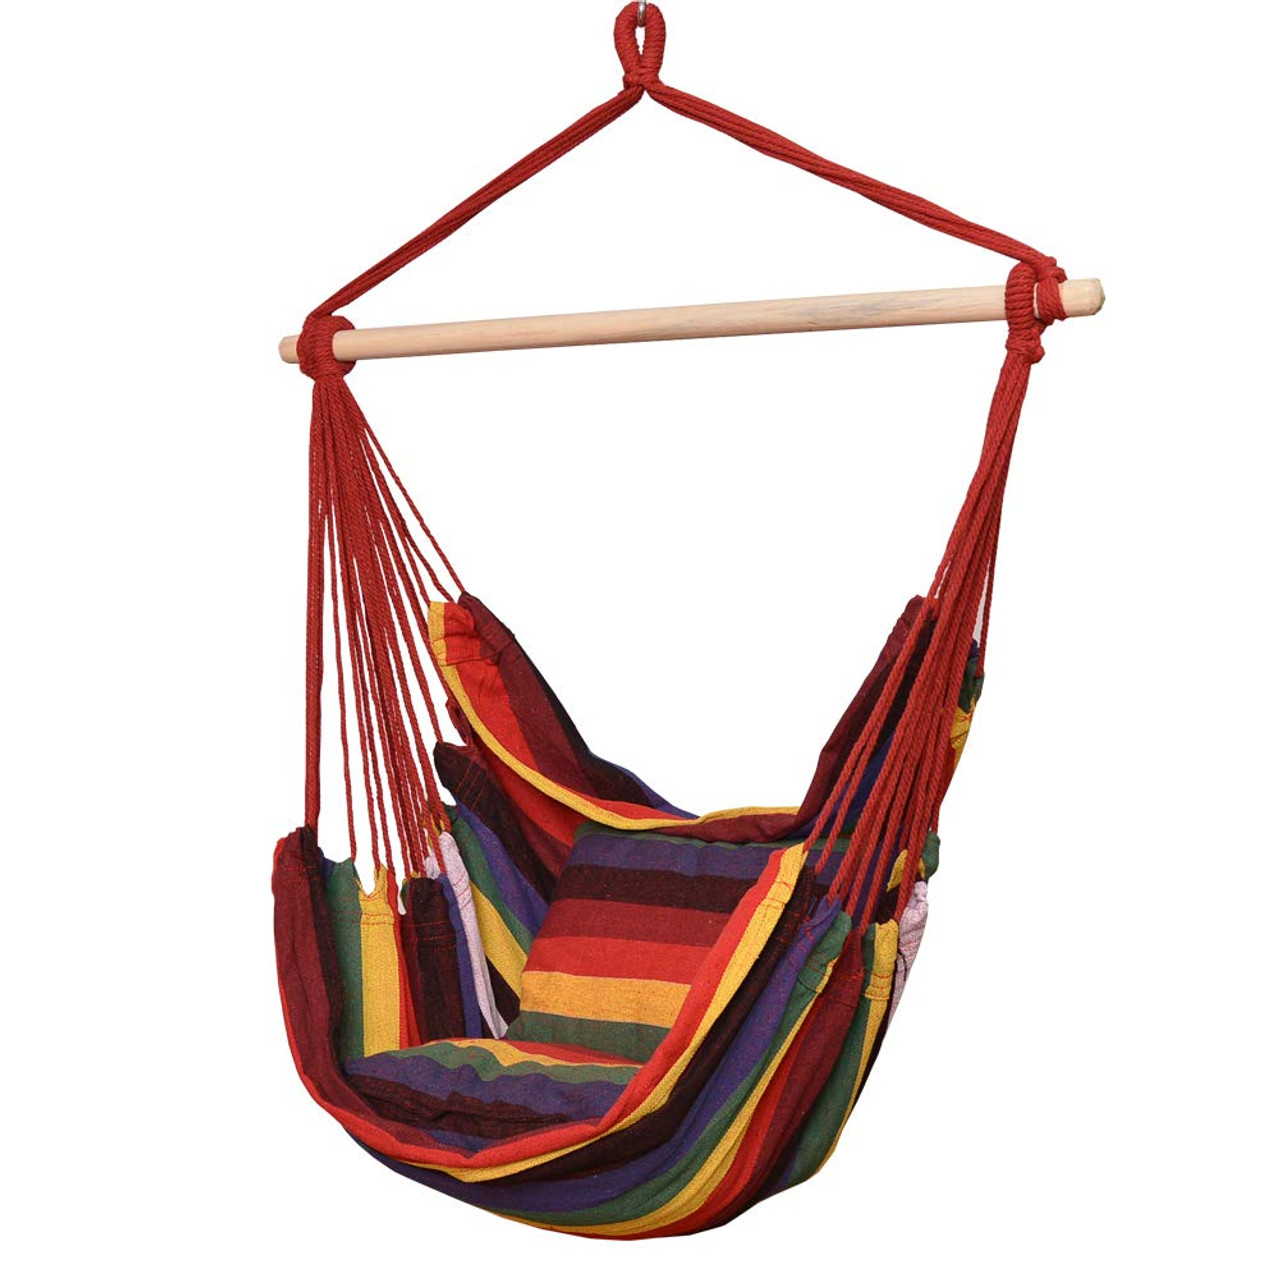 Toucan Outdoor Hanging Rope Chair Hammock Swing Chair With Pillow Set Rainbow